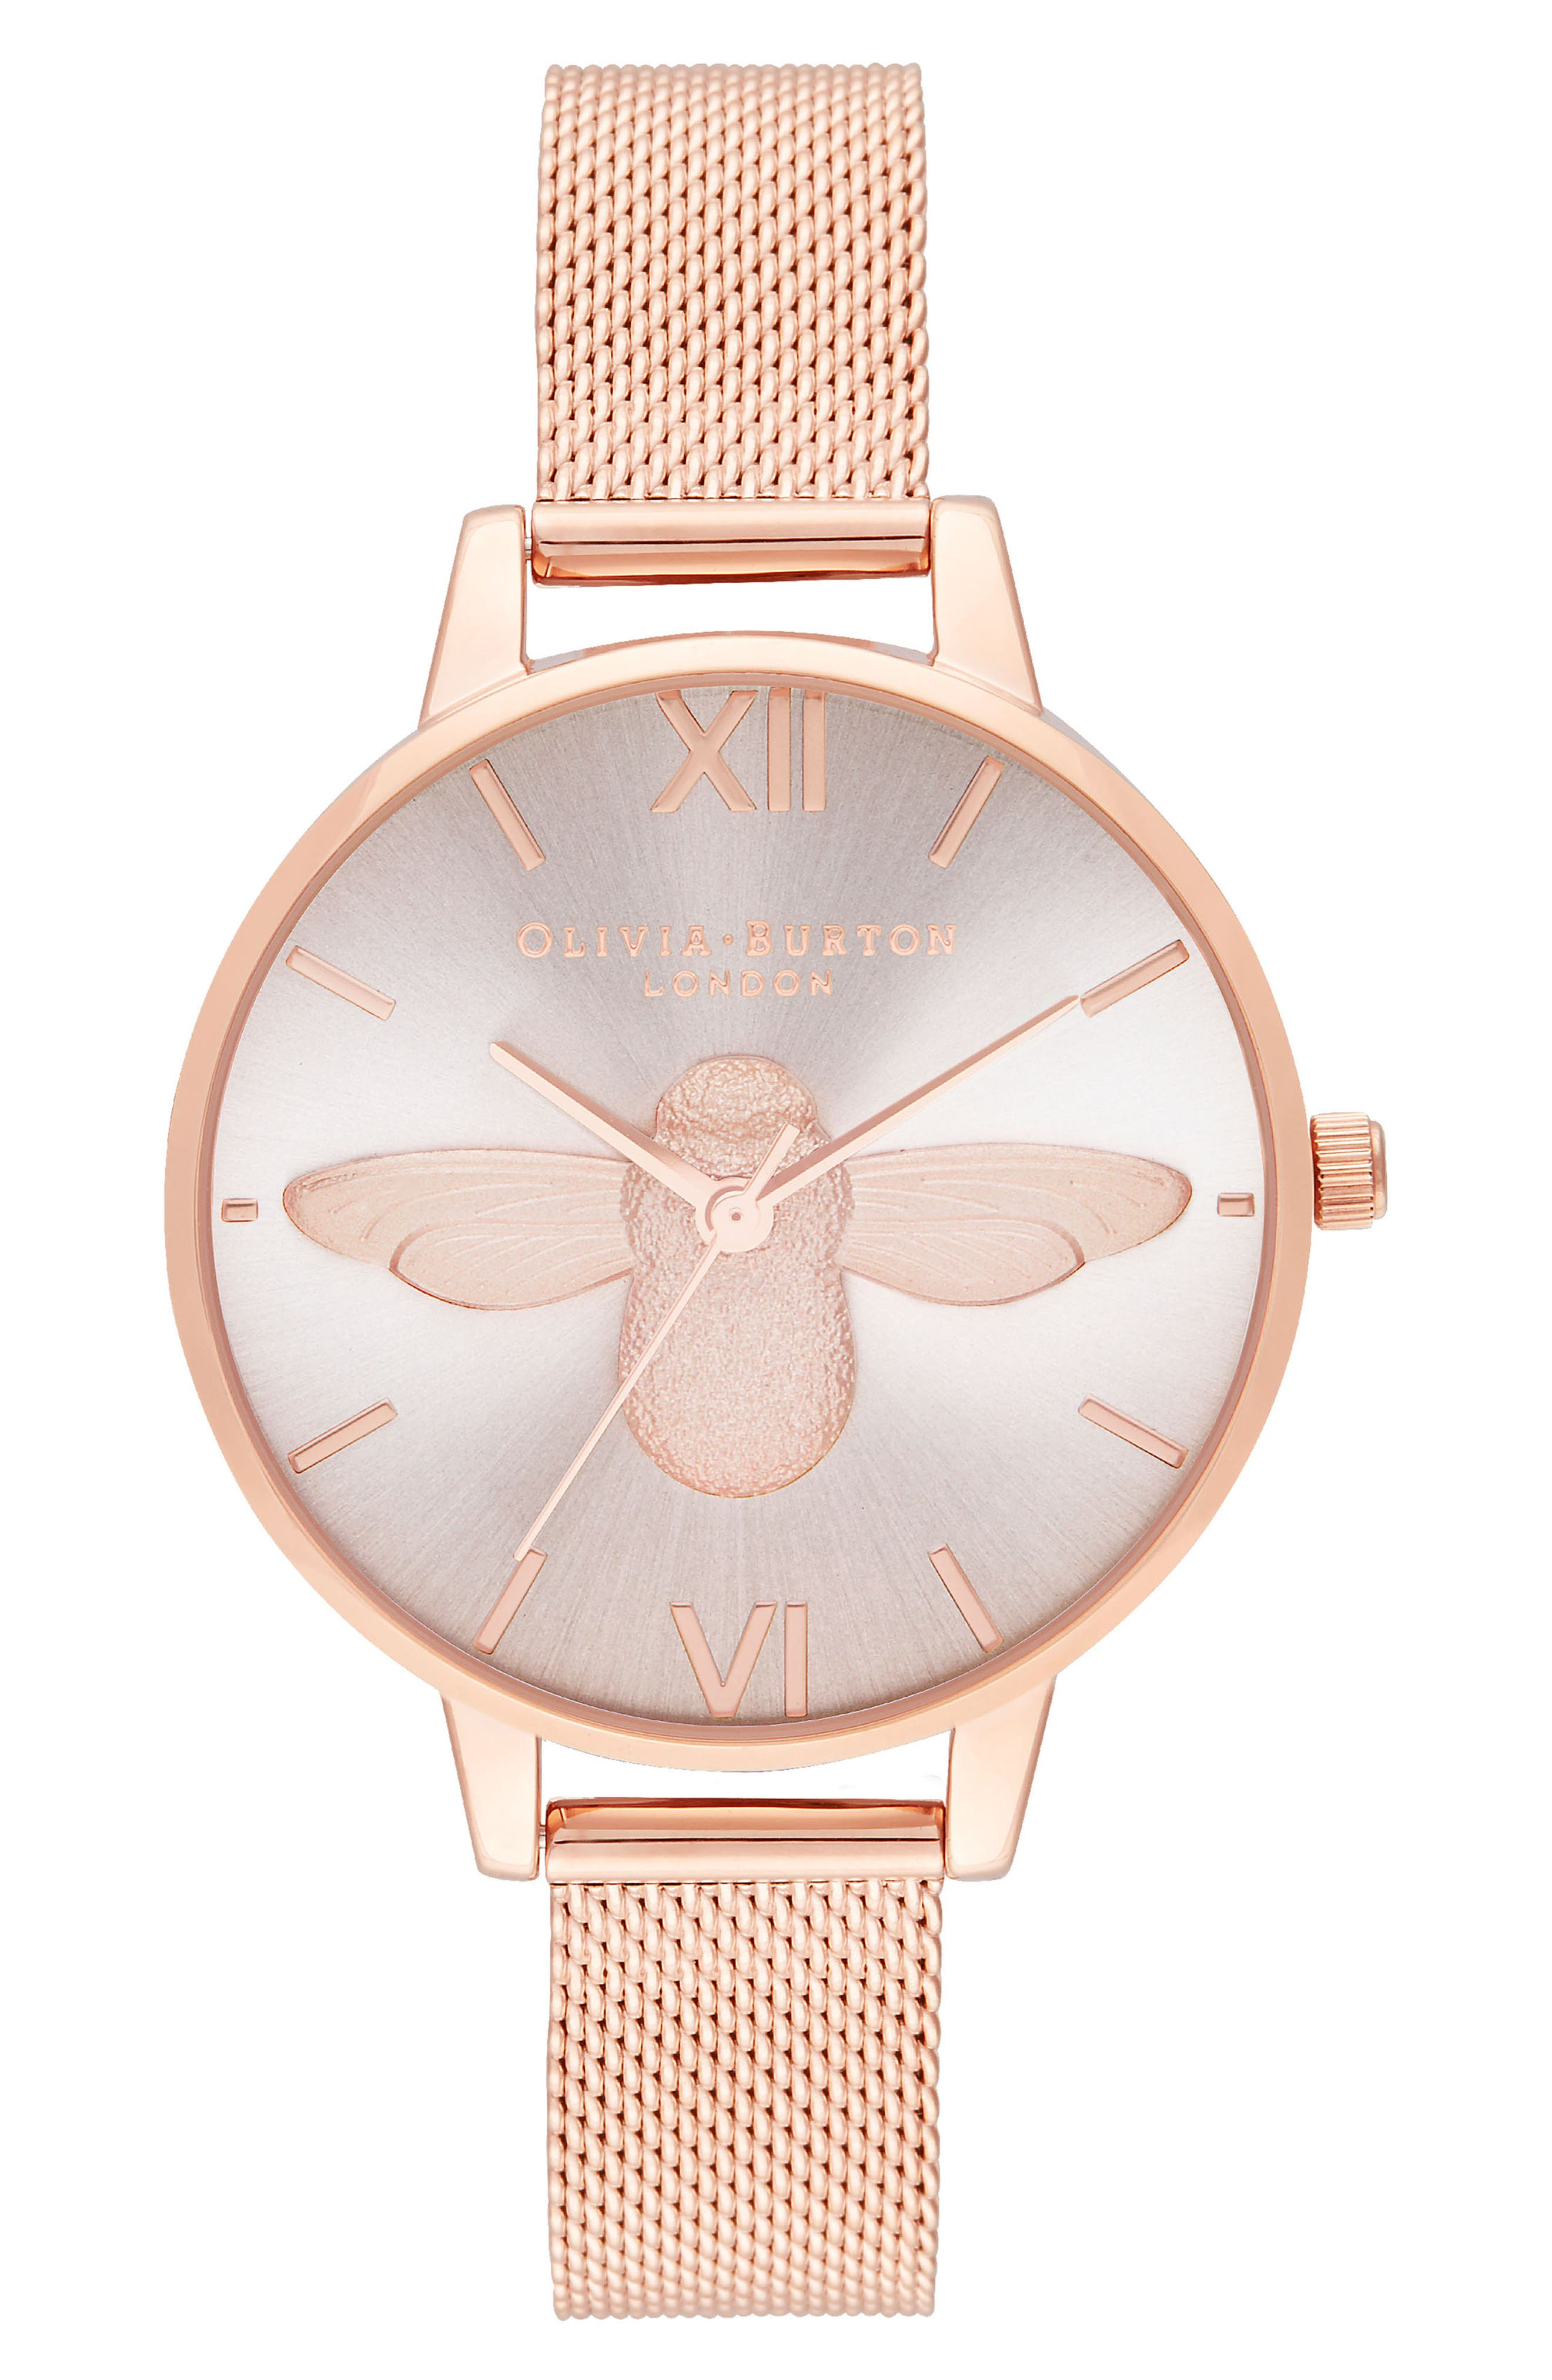 3D Bee Mesh Strap Watch, 34mm,                             Main thumbnail 1, color,                             ROSE GOLD/SUNRAY/ ROSE GOLD